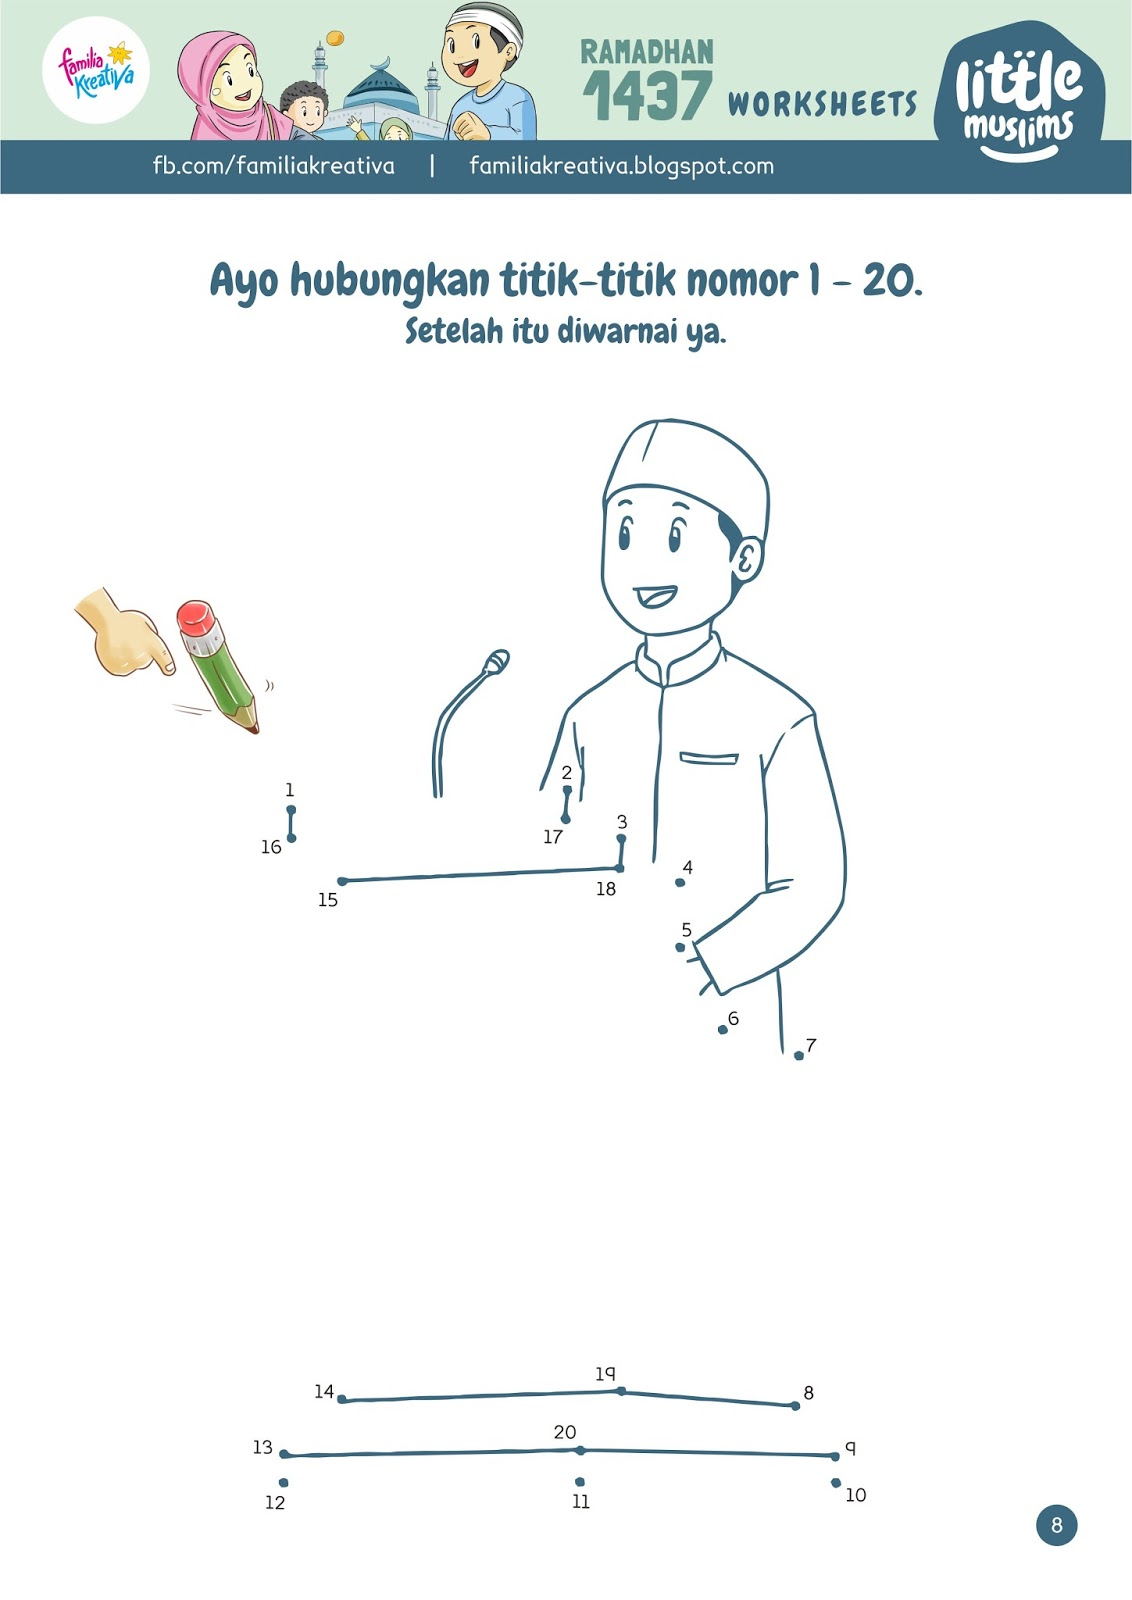 Satu Lagi Download Gratis Worksheets Ramadhan Kece Seri